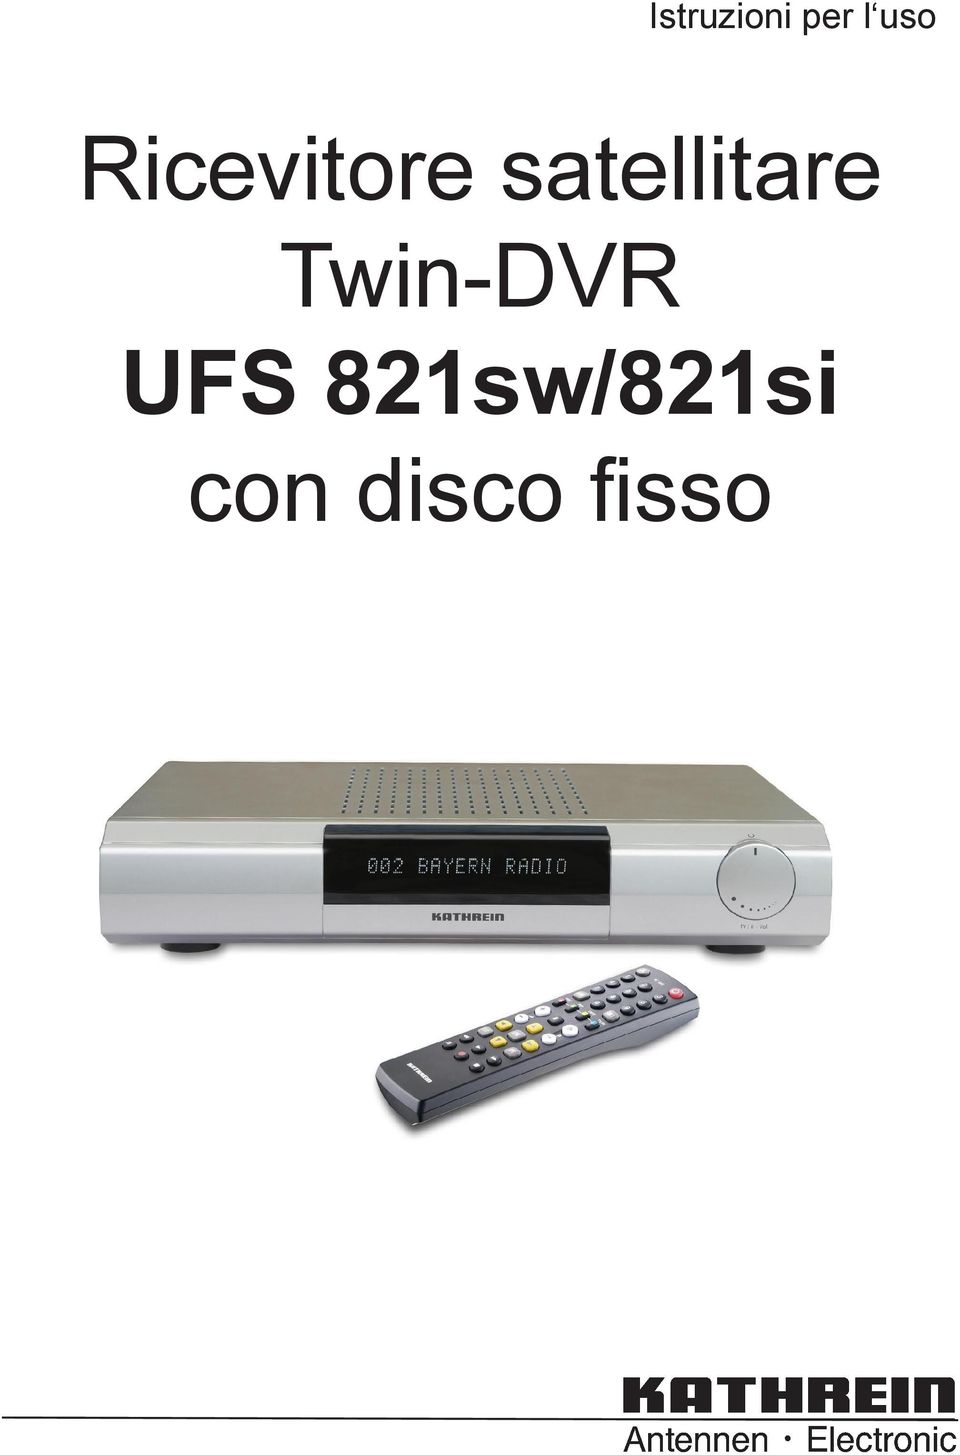 satellitare Twin-DVR